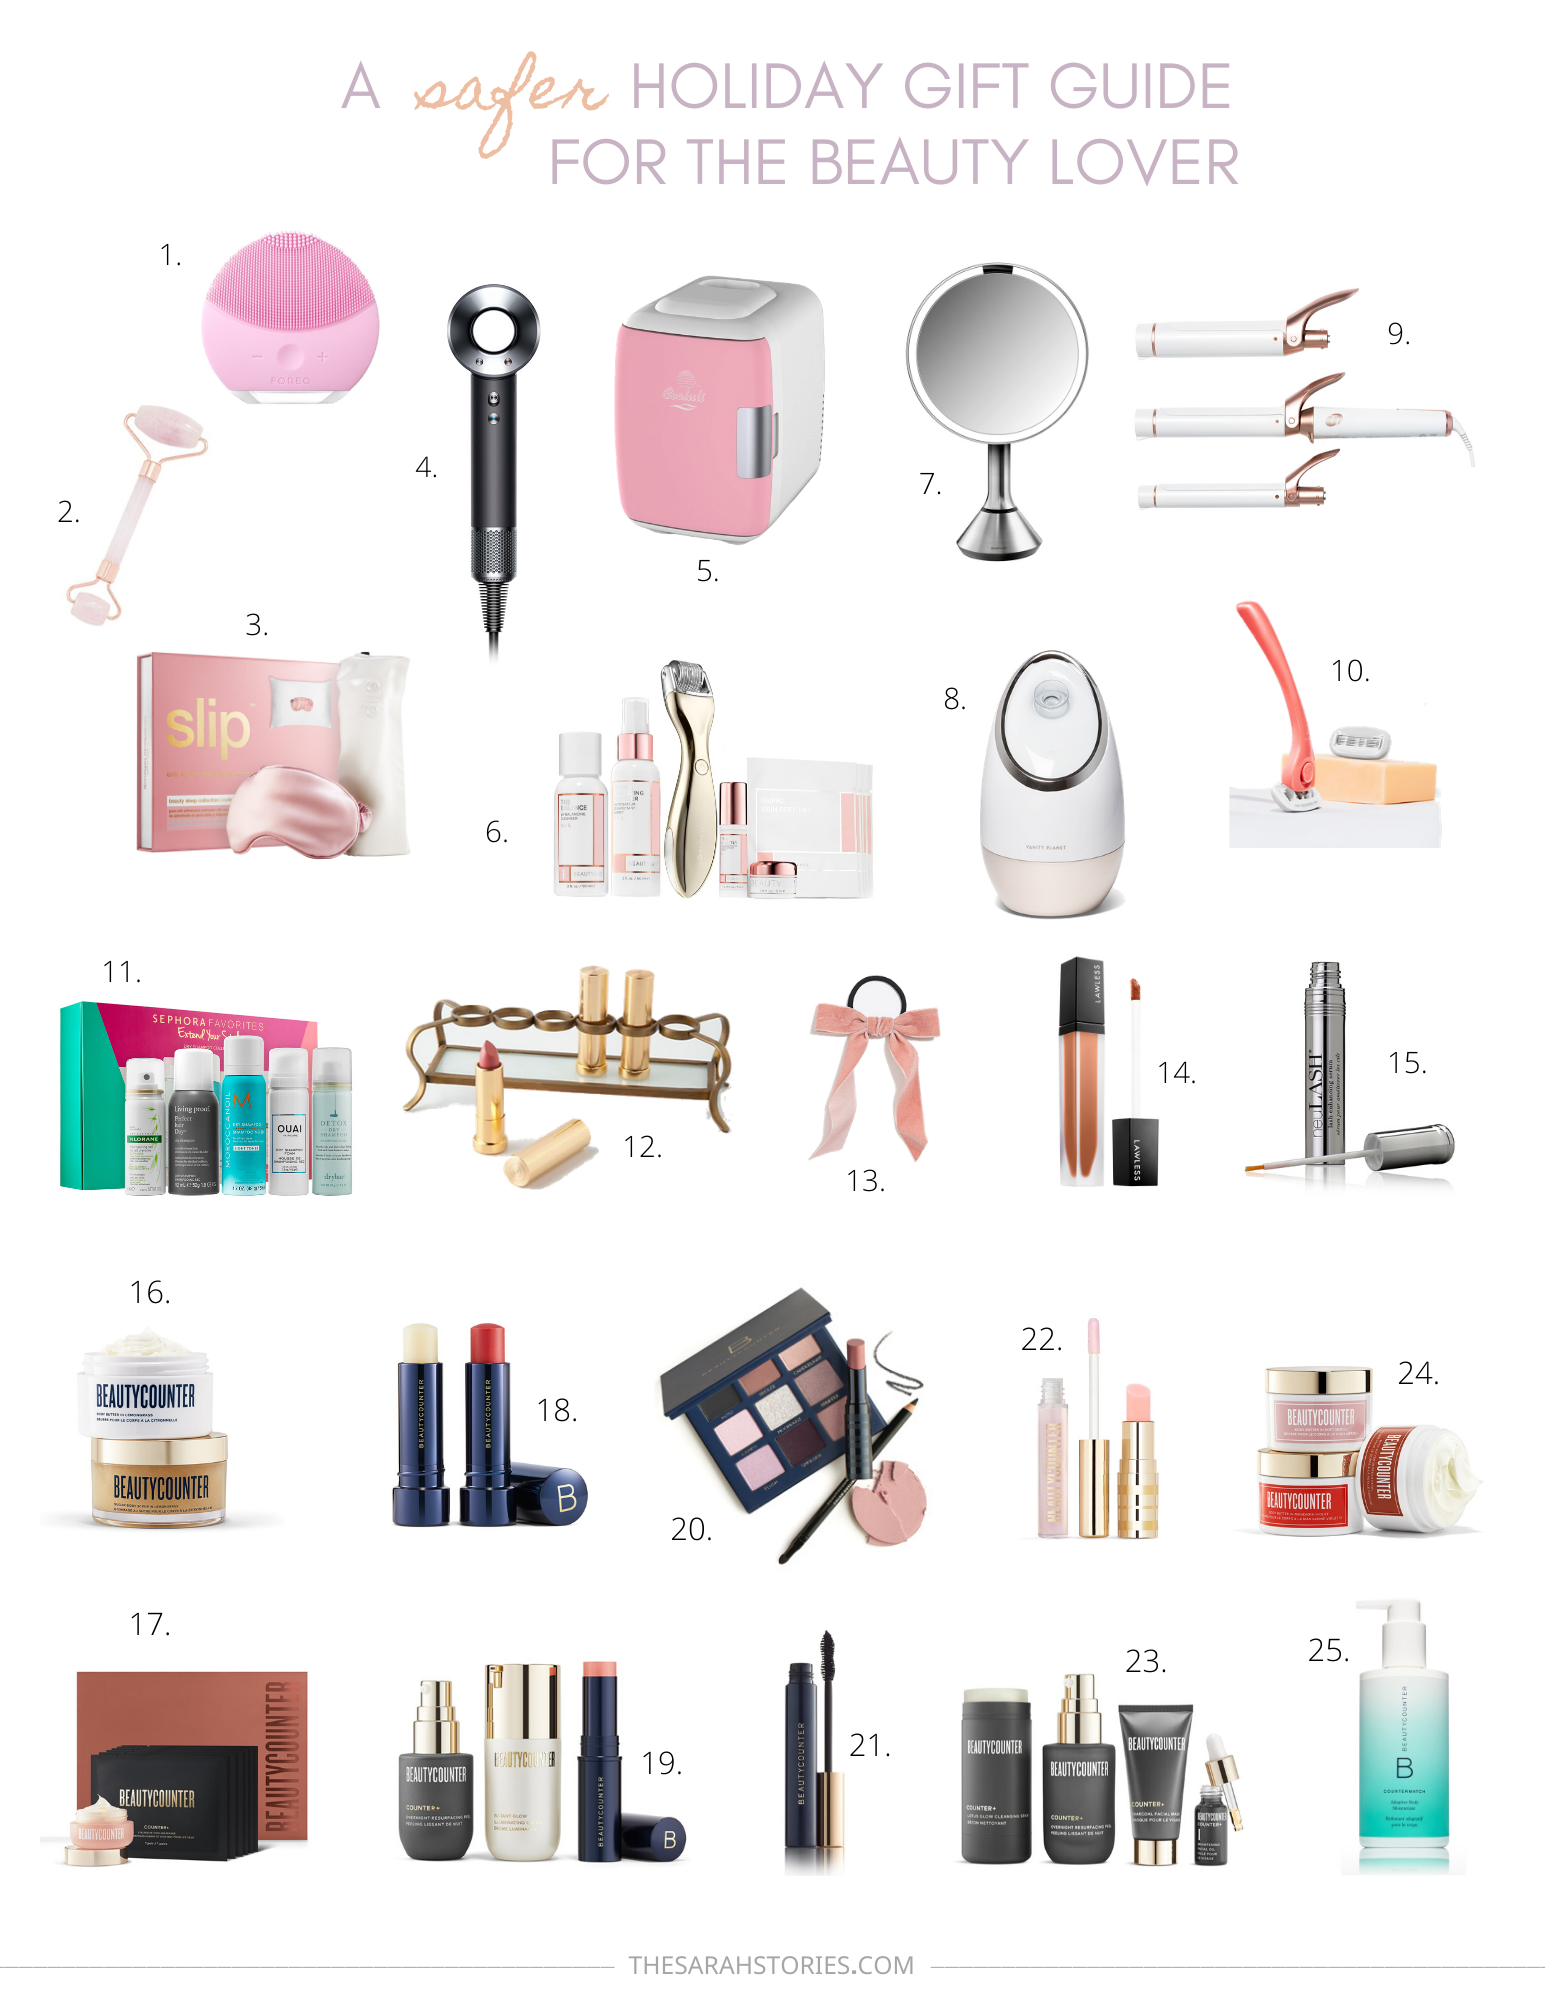 A safer Holiday gift guide for the Beauty lover